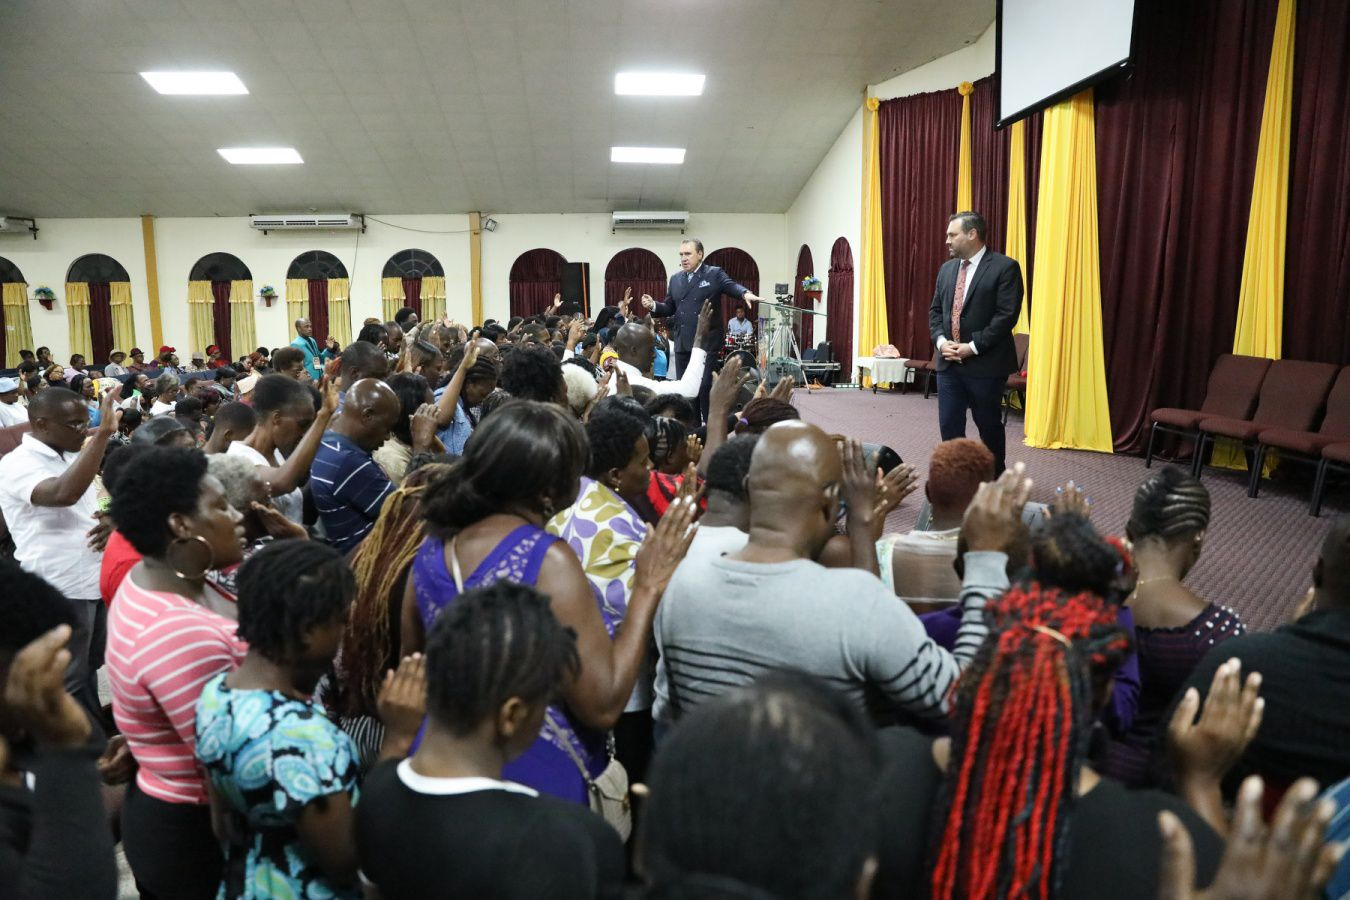 Caribbean Ablaze Update: Lives Are Being Changed by the Fire of God!